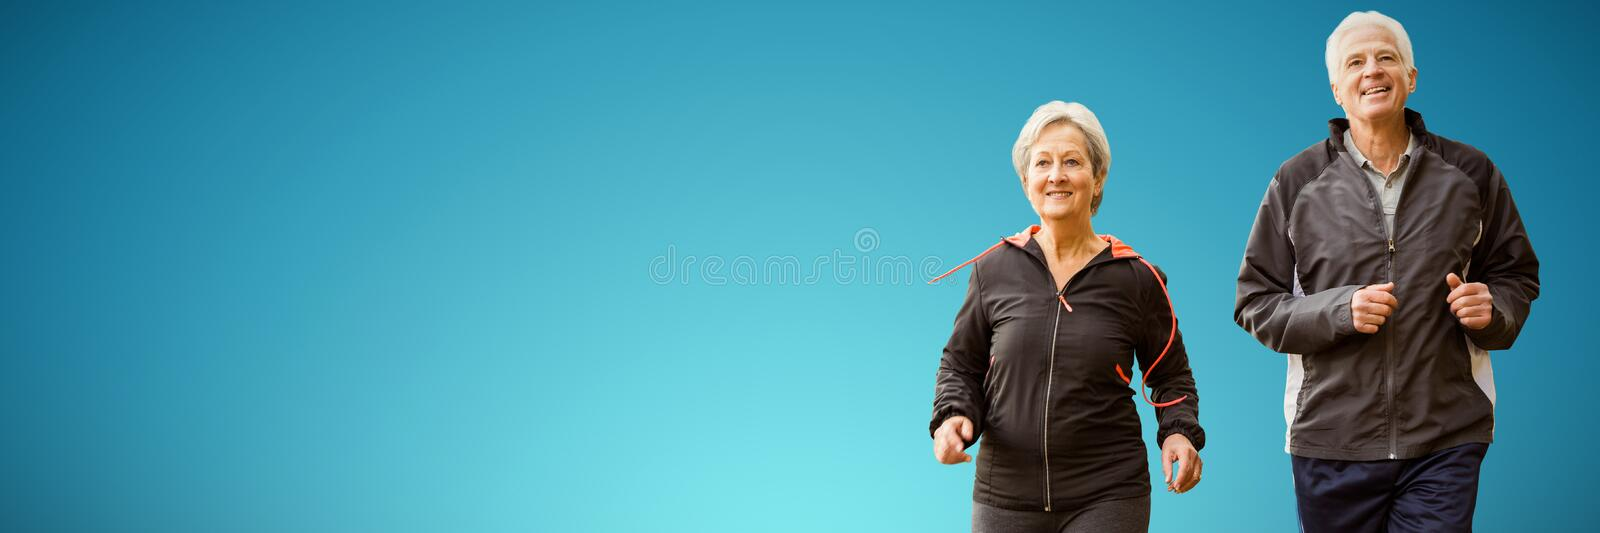 Composite image of elderly couple running together royalty free stock photo